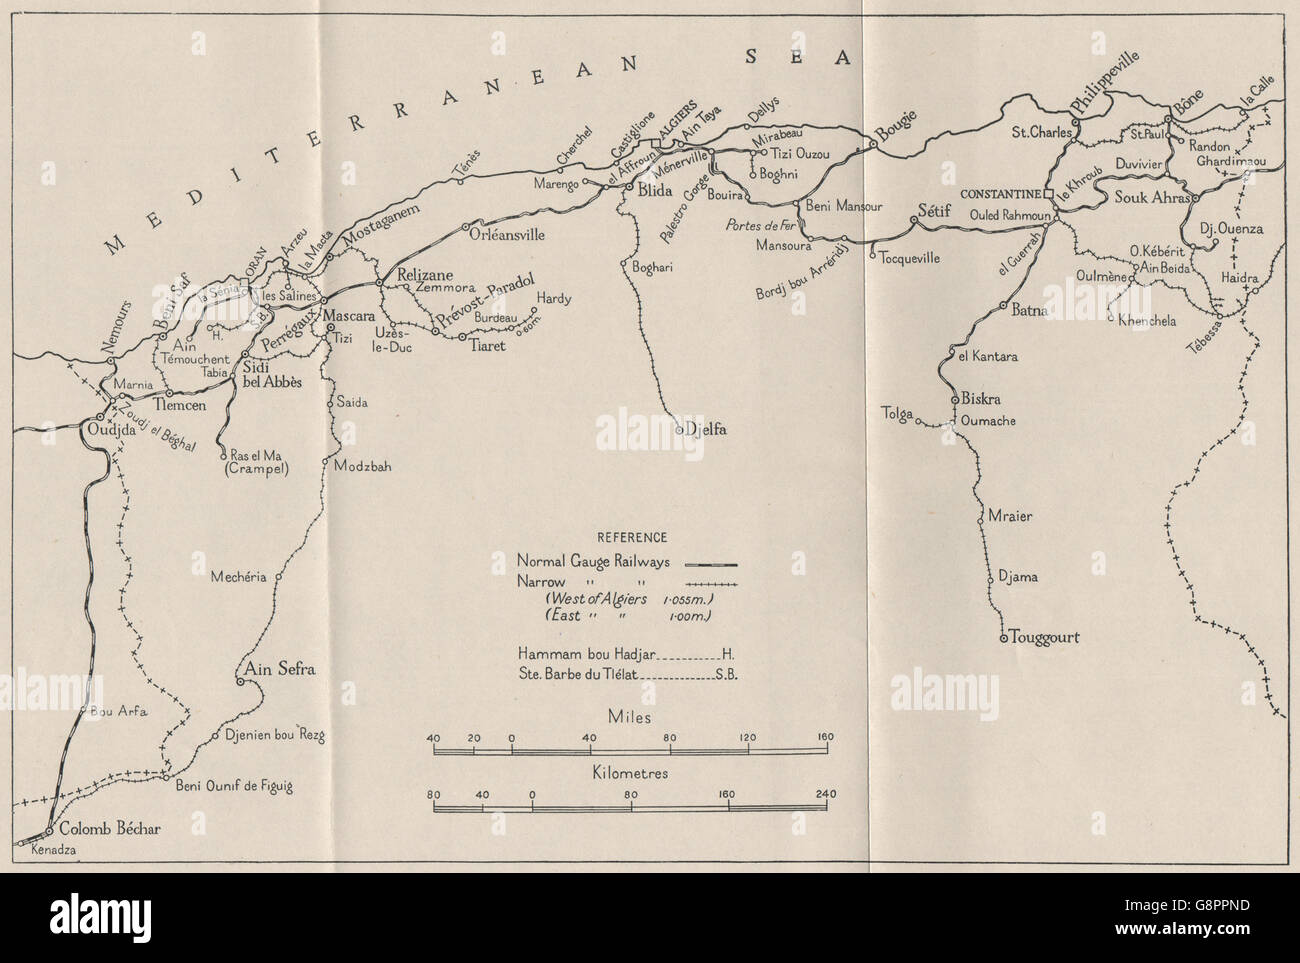 ALGERIAN RAILWAYS: WW2 ROYAL NAVY INTELLIGENCE MAP, 1944 - Stock Image